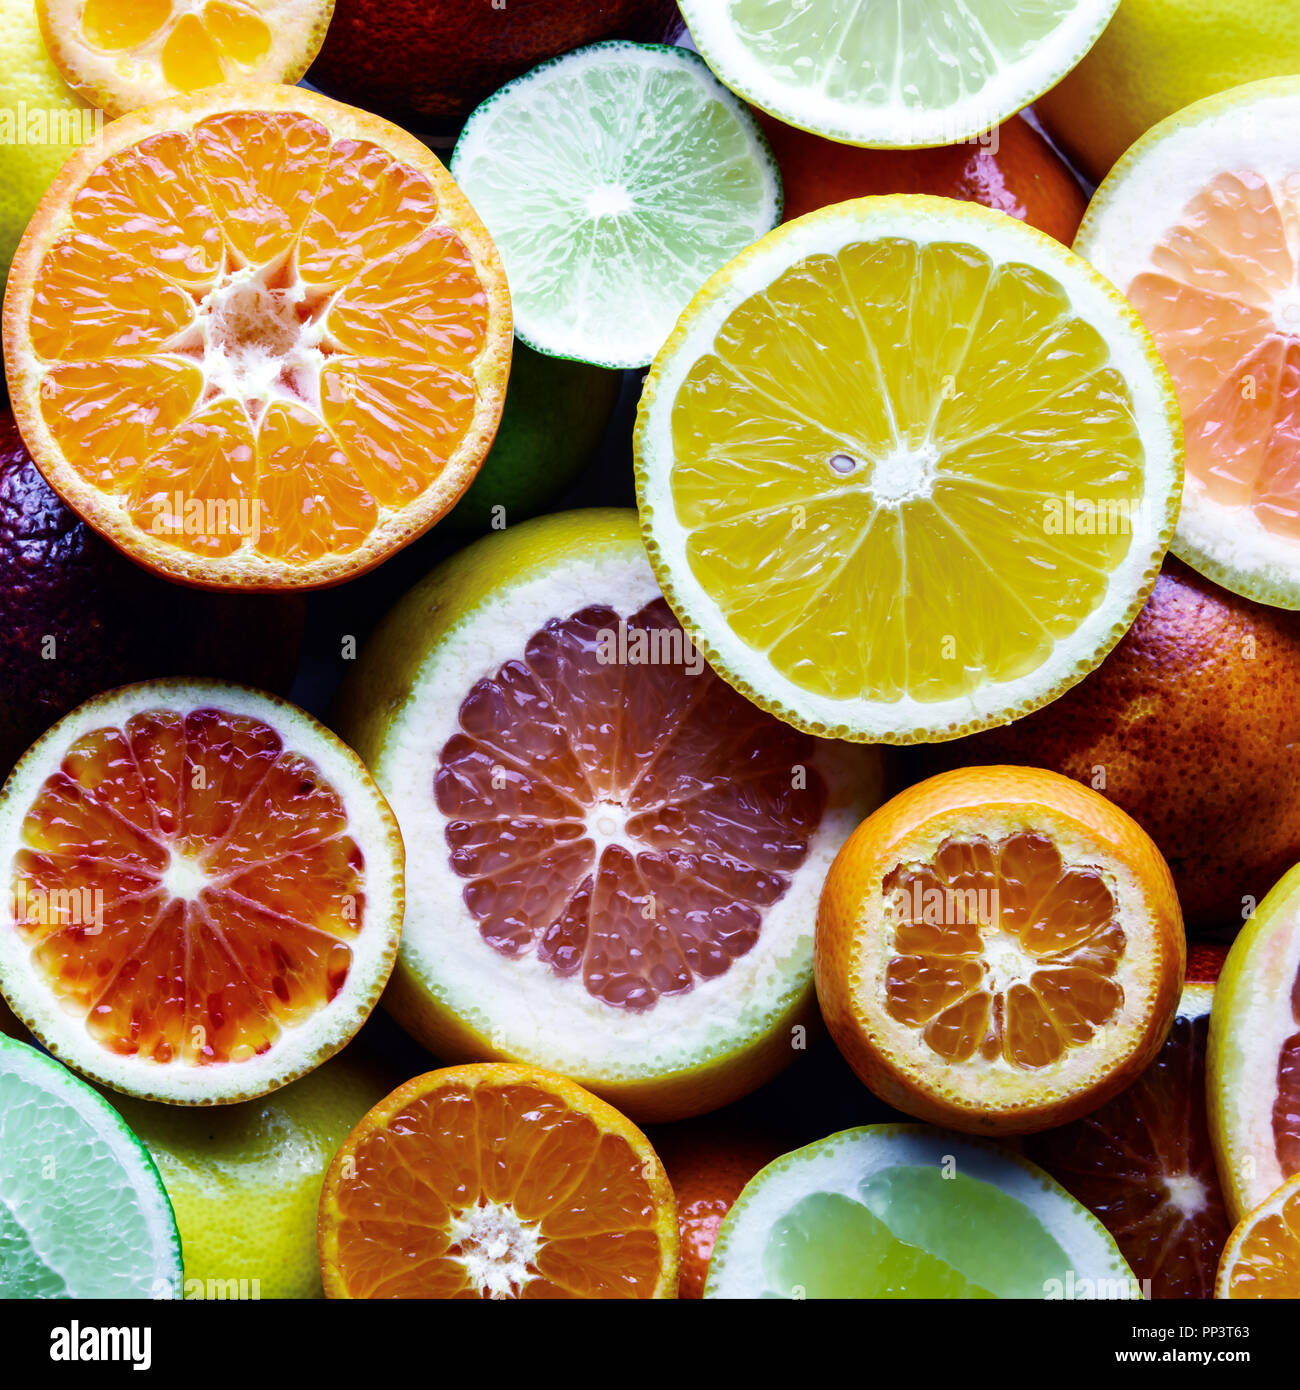 Mix Of Different Citrus Fruits Closeup Healthy Diet Vitamin Concept Food Photography Stock Photo Alamy